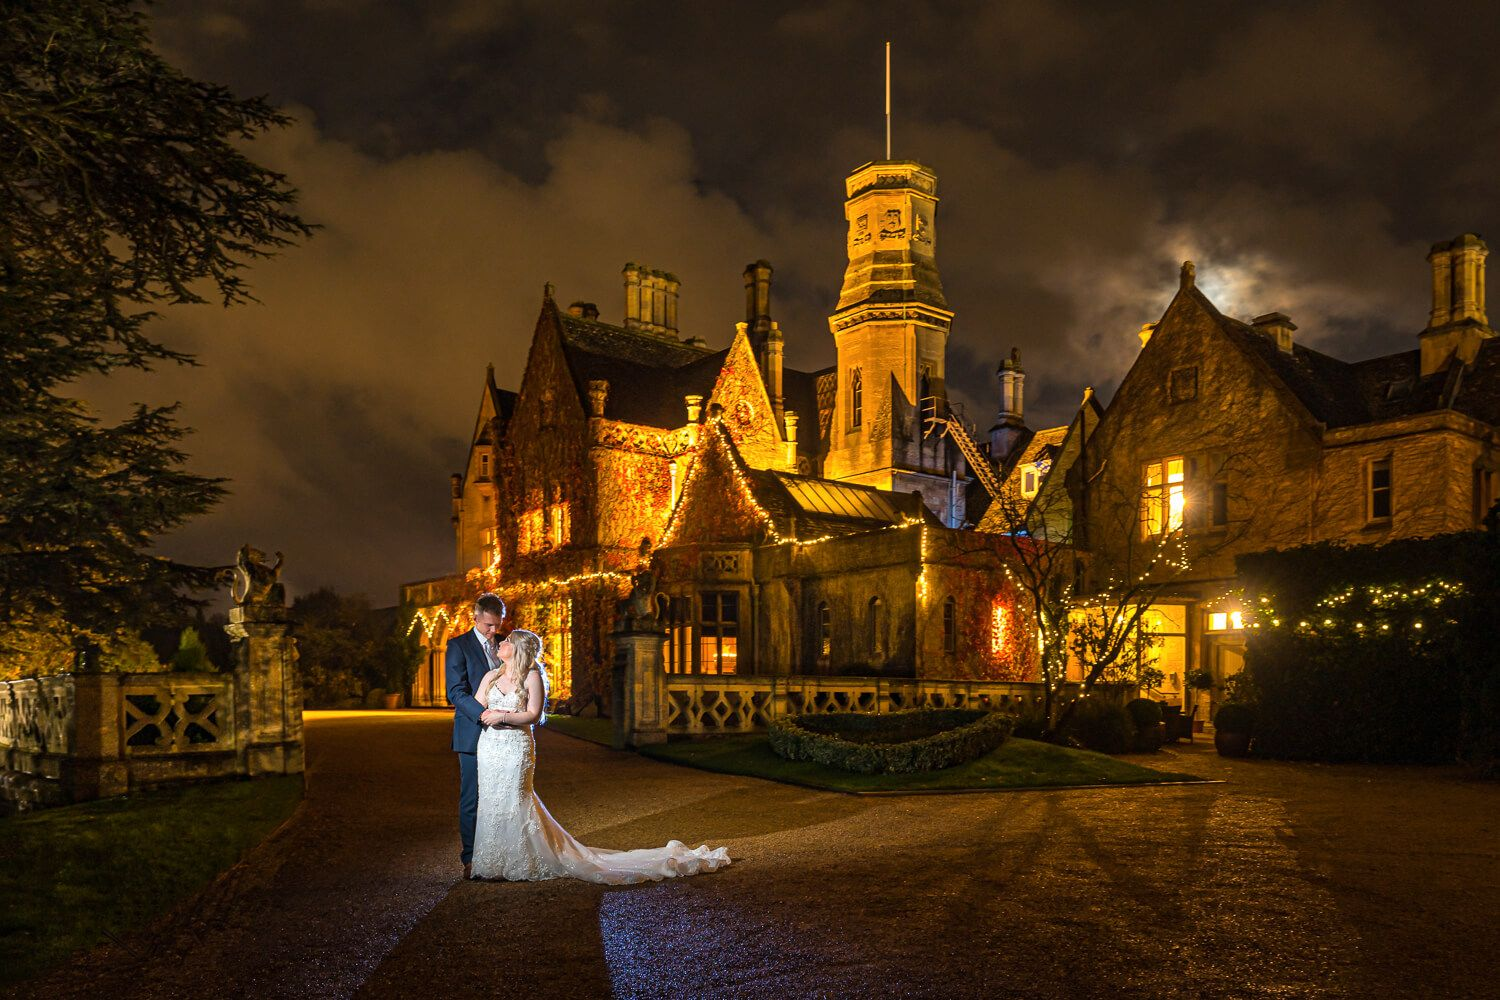 bride and groom at night in front of manor by the lake